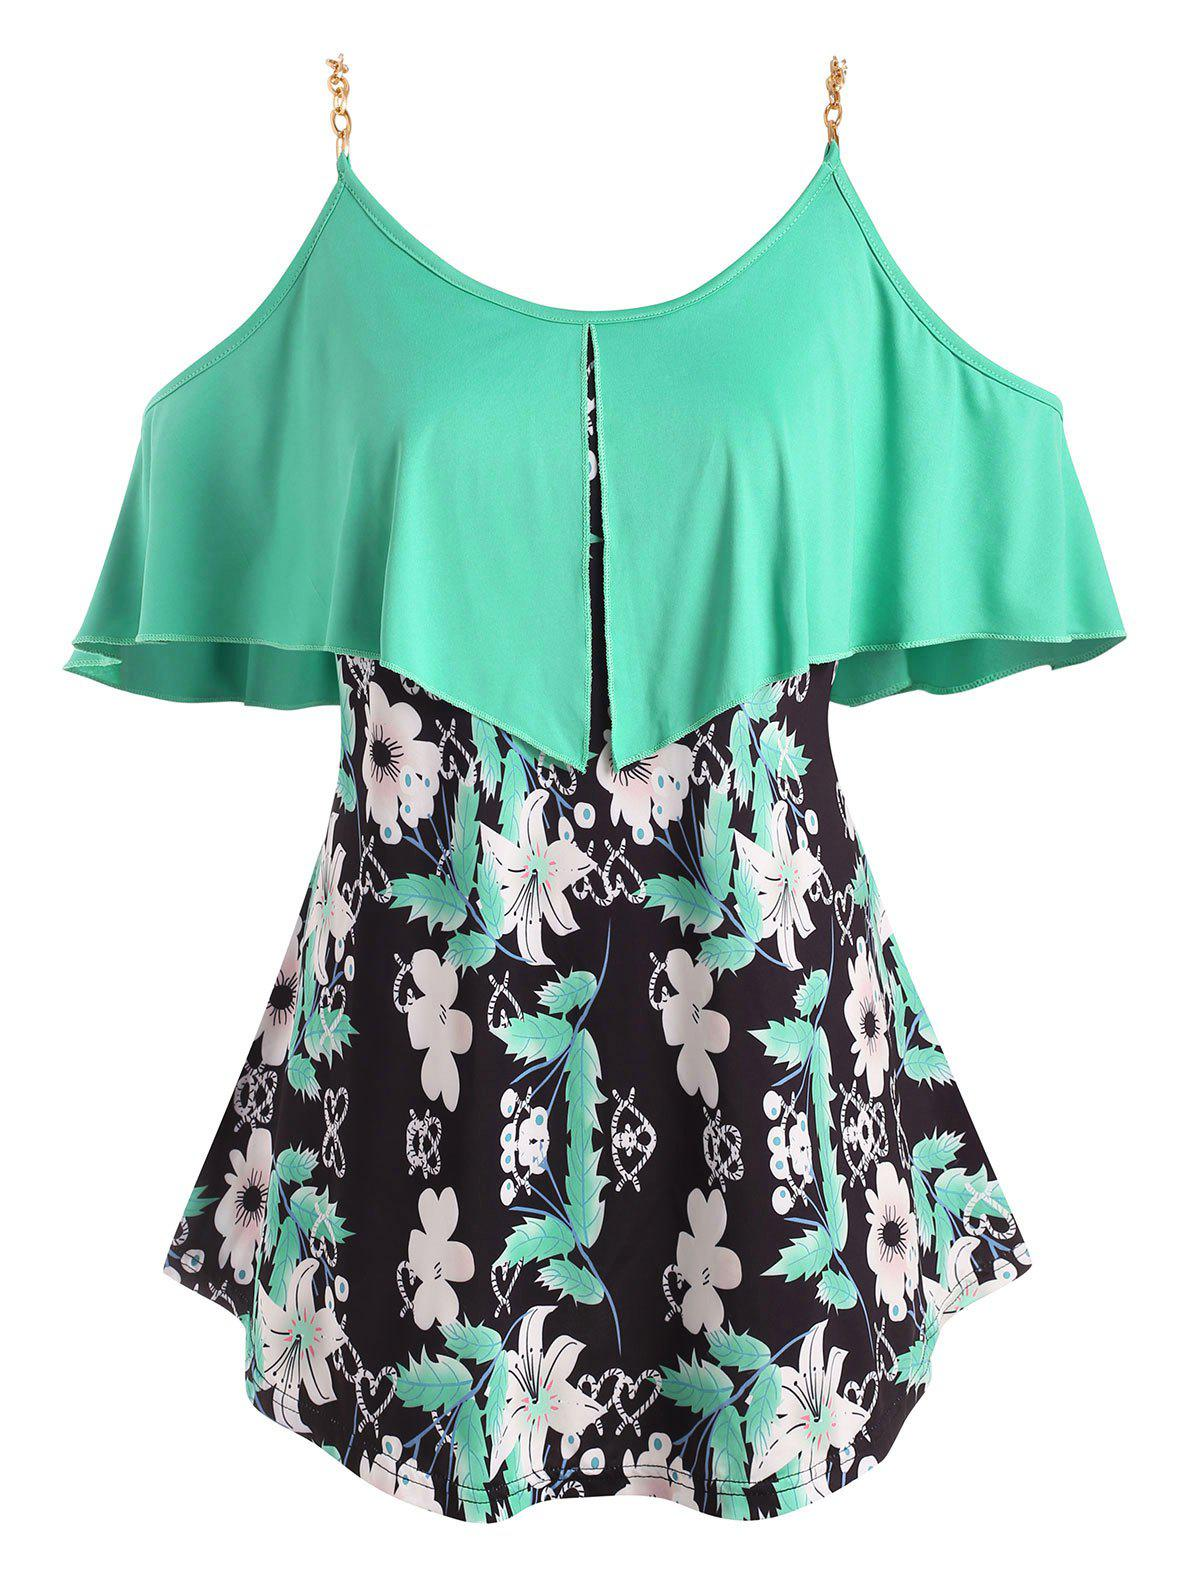 Trendy Foldover Metallic Ring Floral Cold Shoulder Plus Size Top